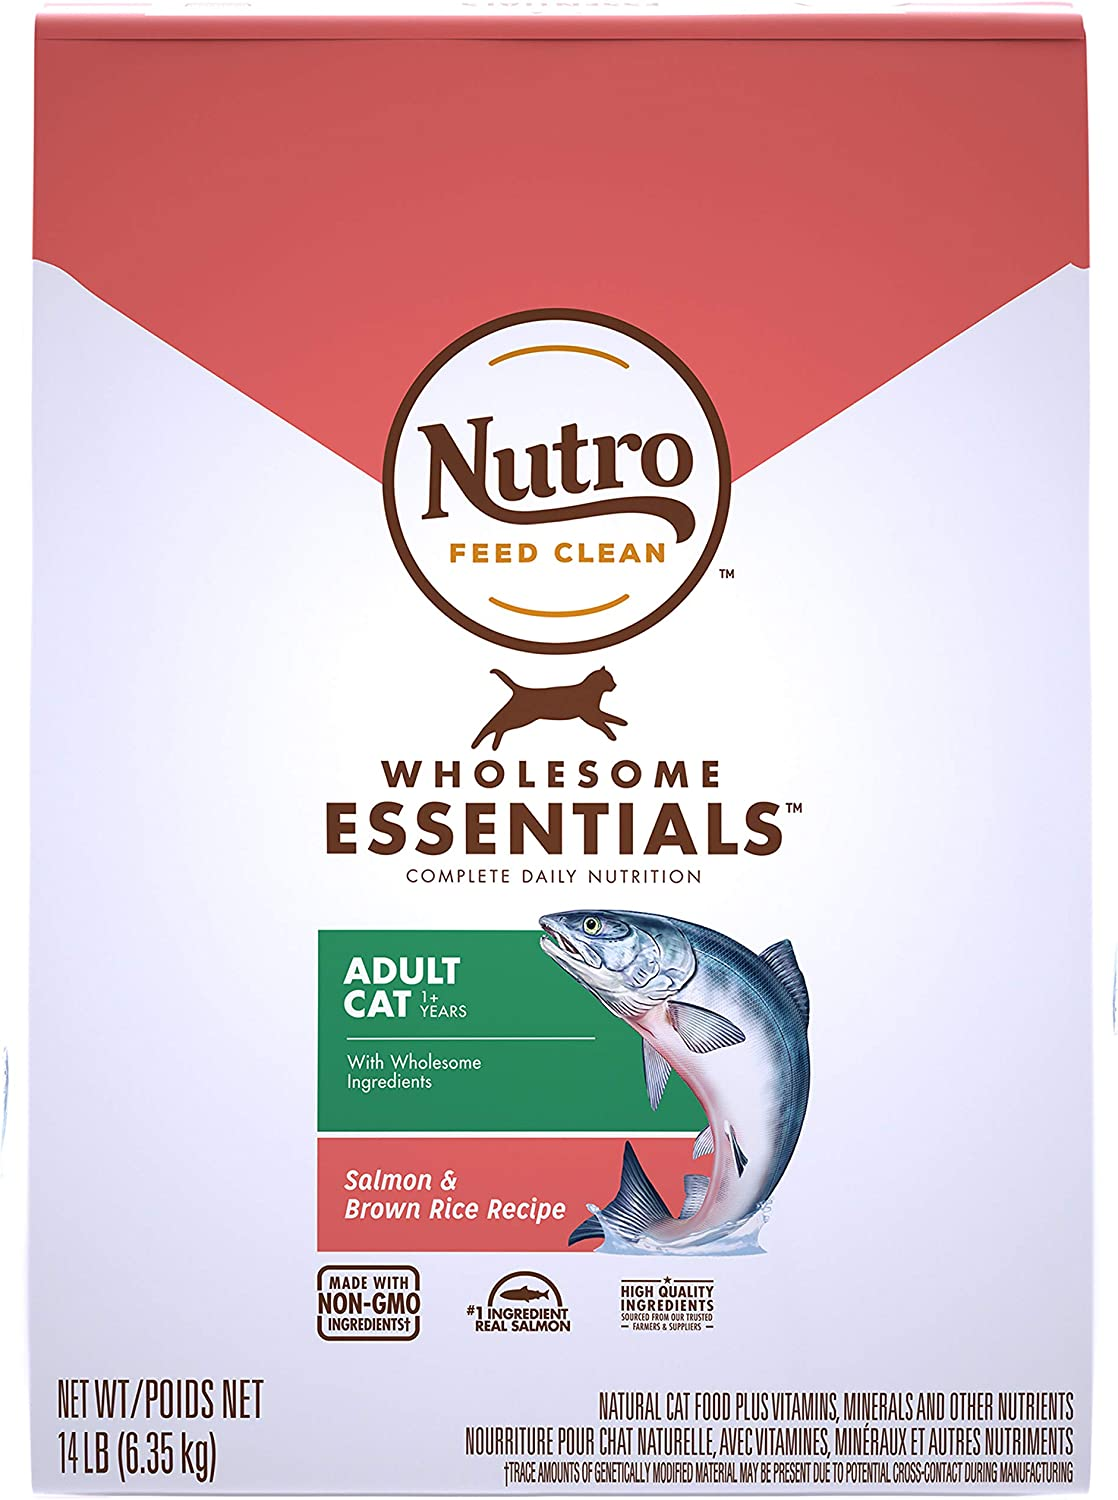 Nutro Wholesome Essentials Adult Dry Food Free shipping All stores are sold anywhere in the nation Cat Salmon